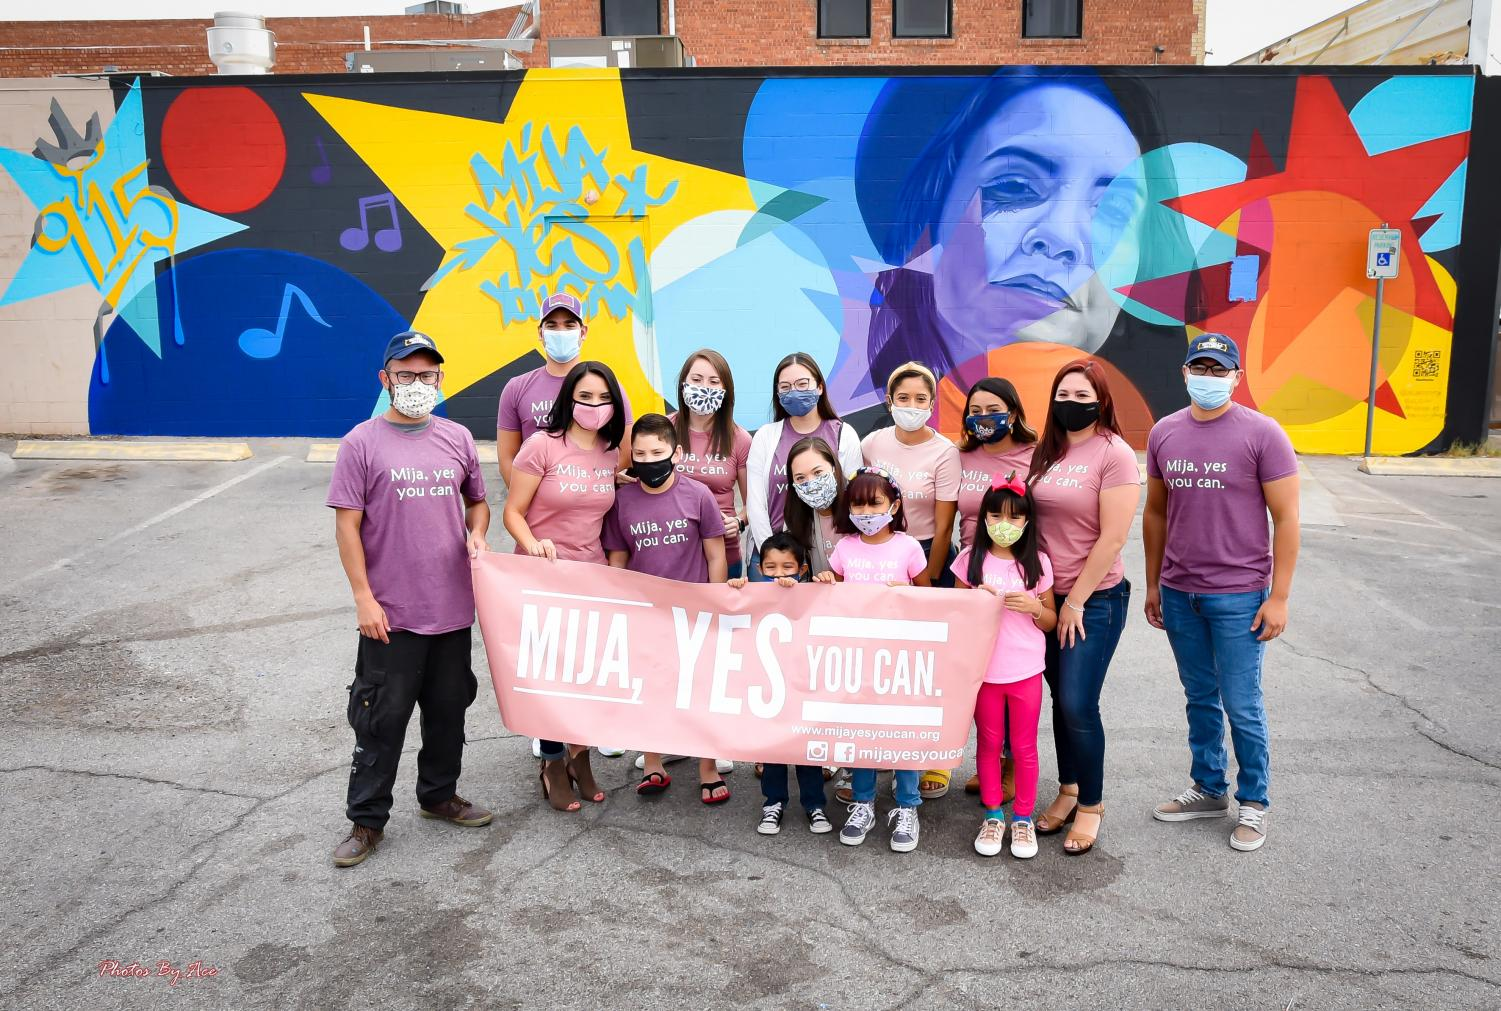 Mija%2C+Yes+you+can%3A+El+Paso+nonprofit+empowers+women